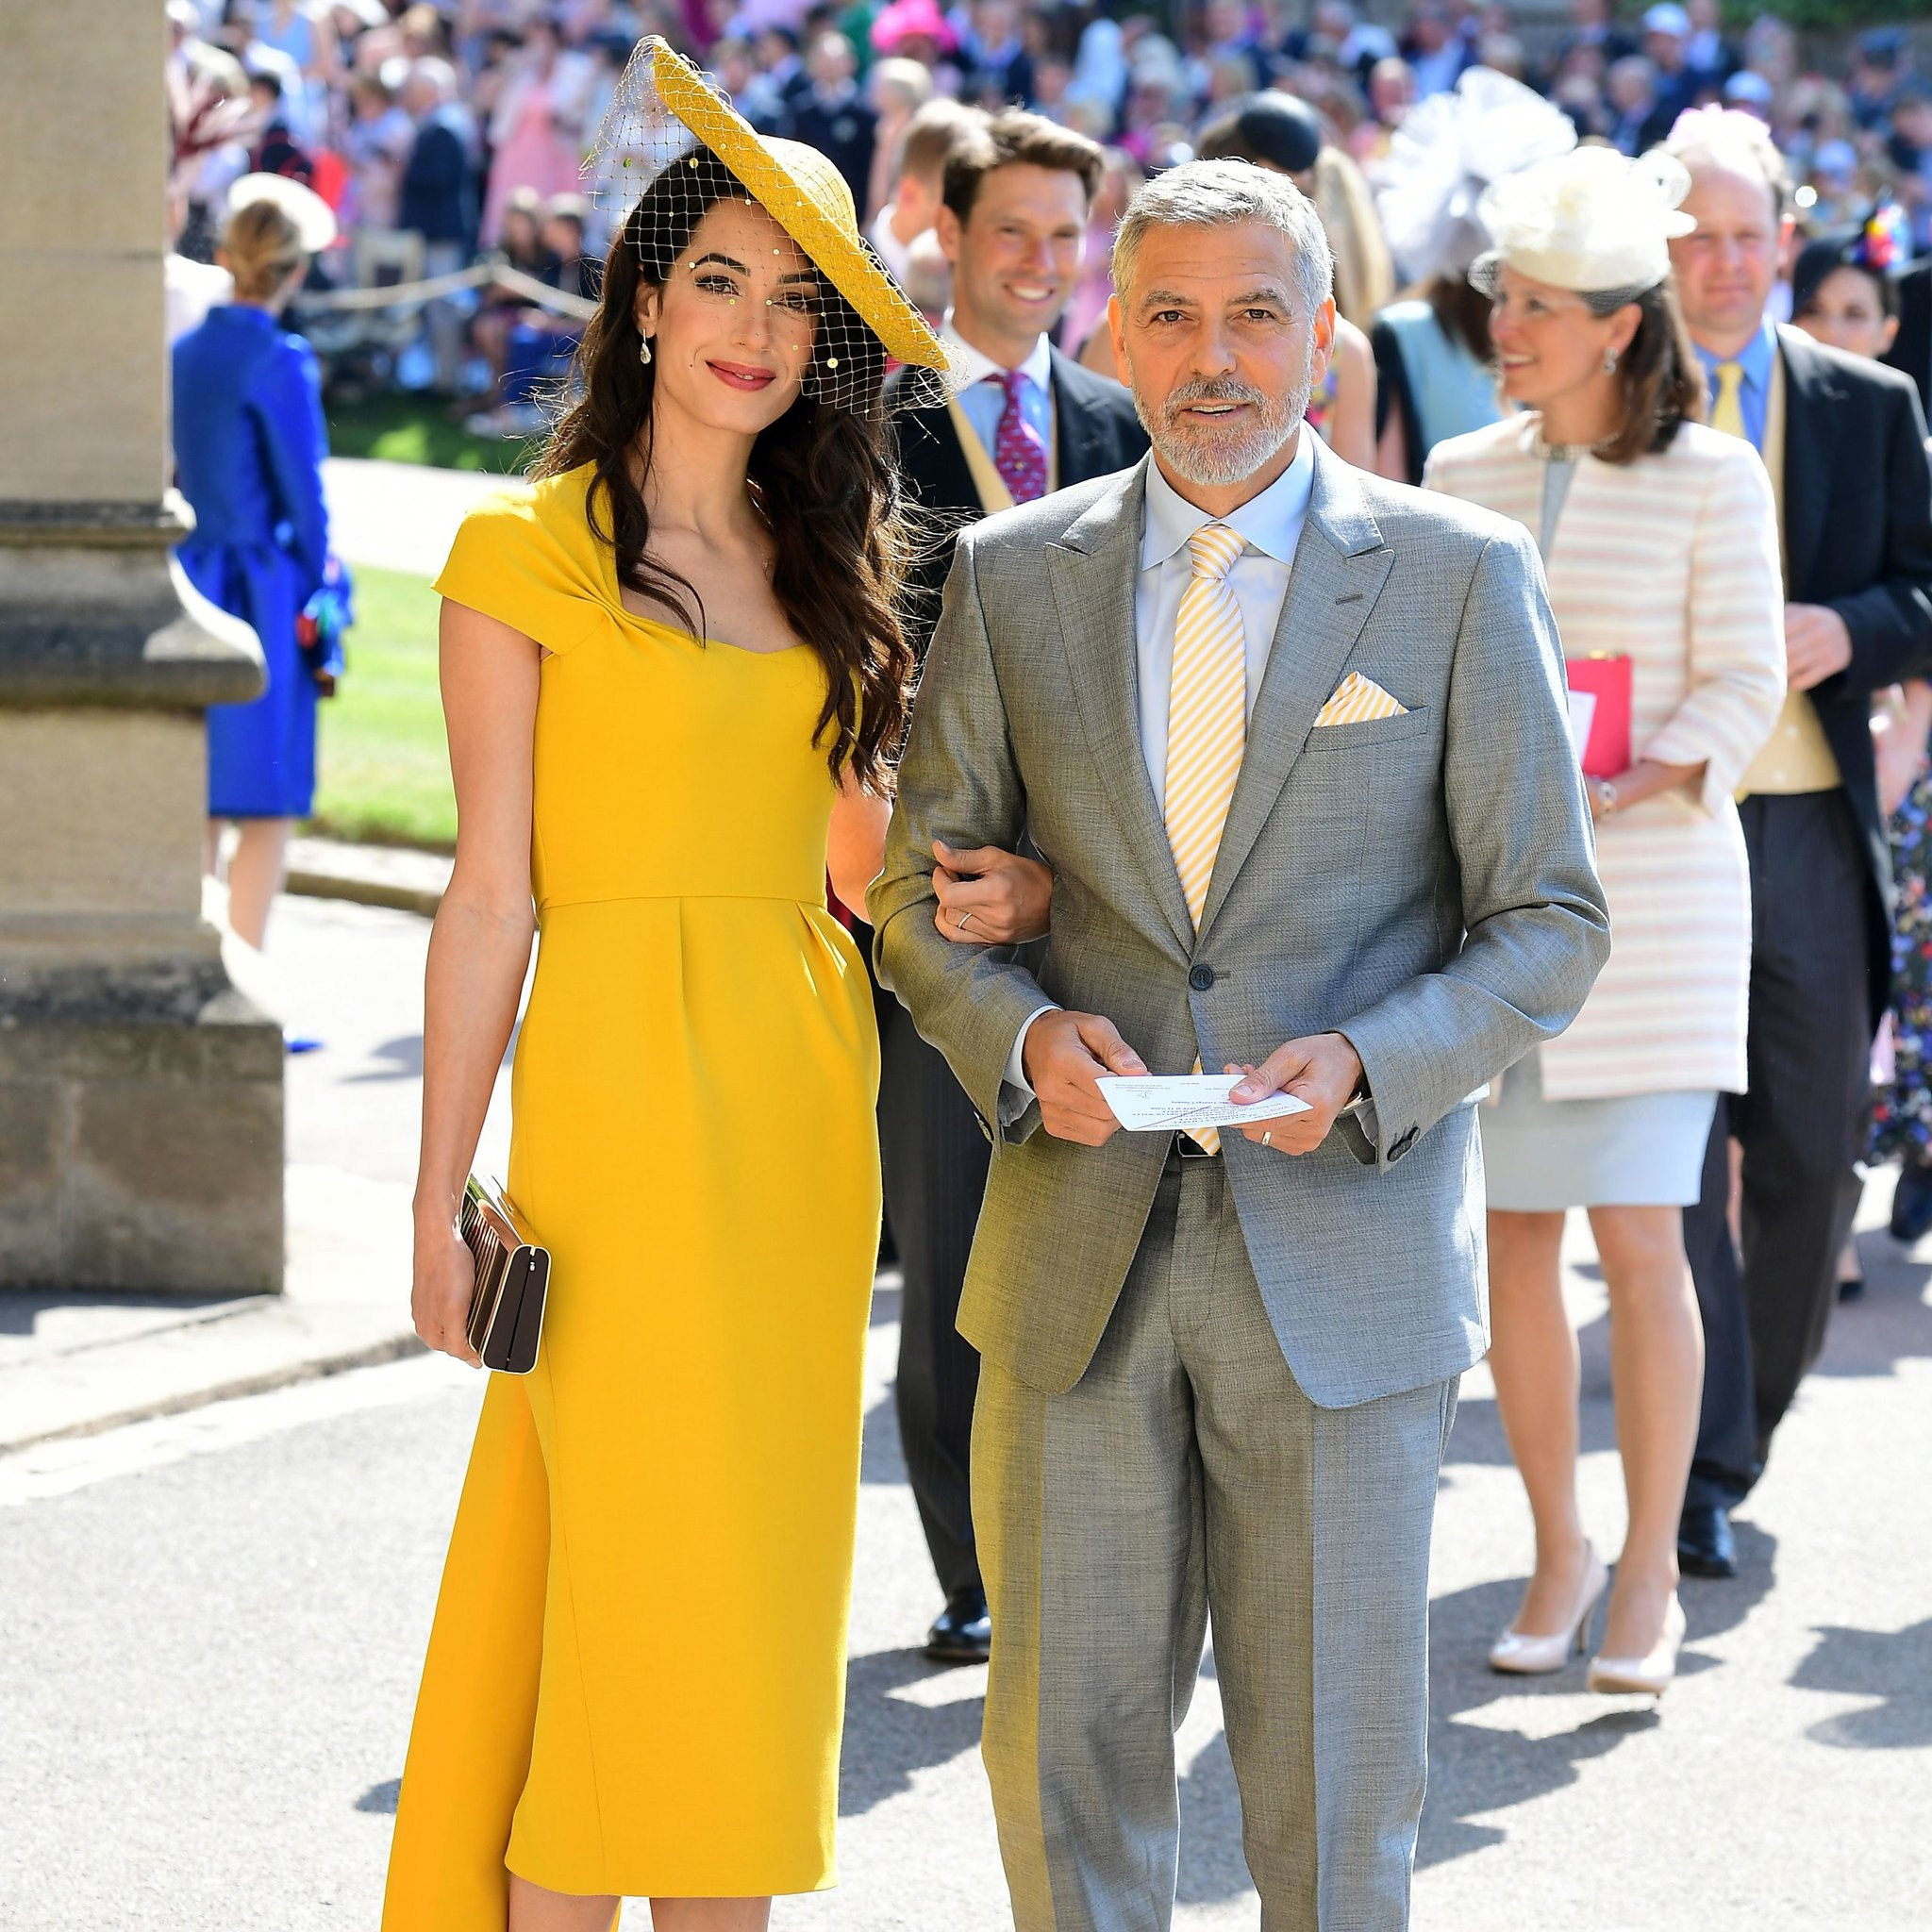 Amal-Clooney-Dress-Royal-Wedding-2018.jpg